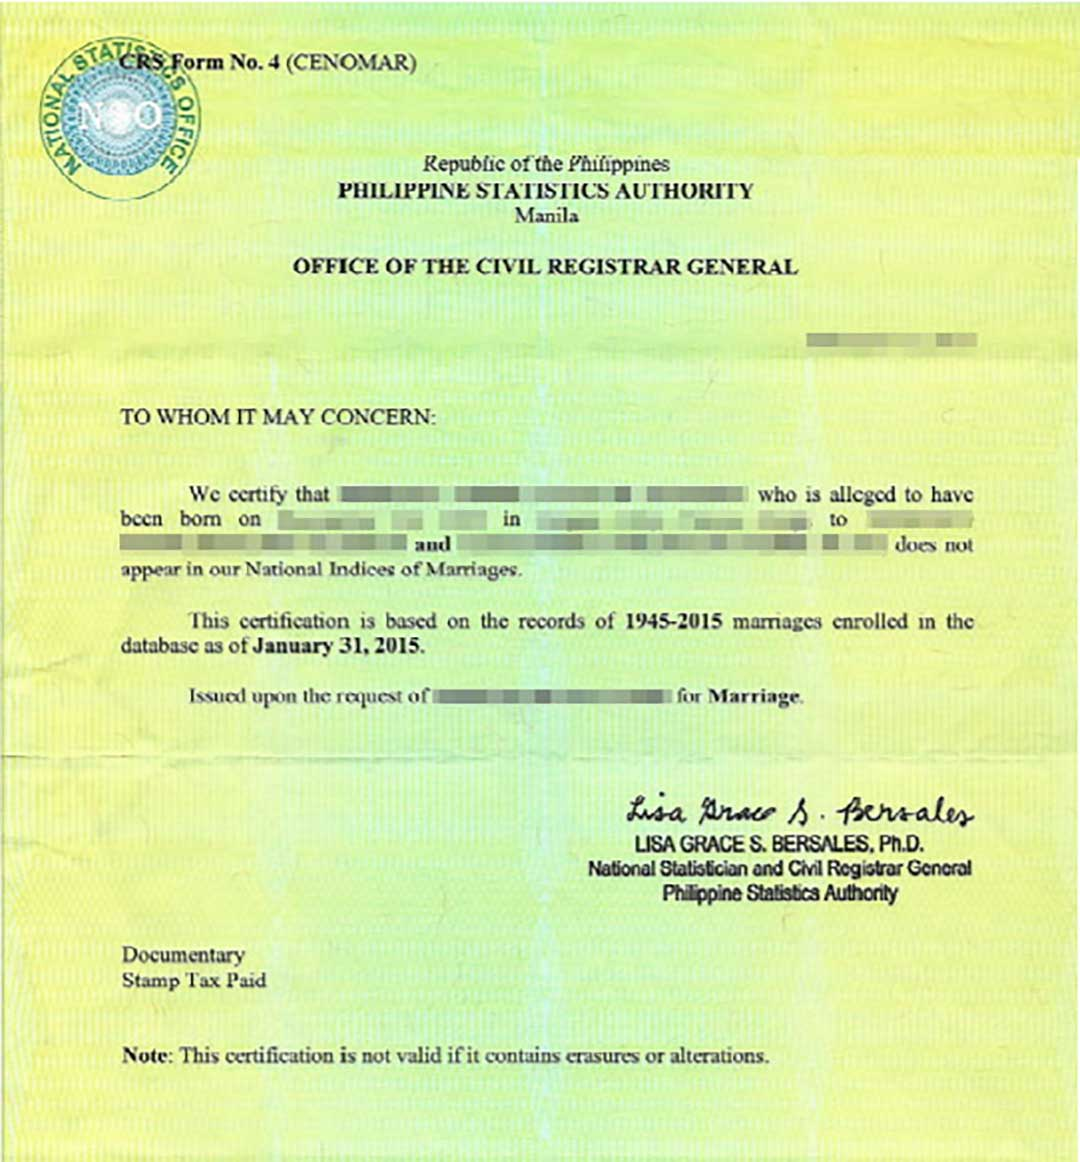 A Certificate of No Marriage from the Philippines, which checks your civil status.